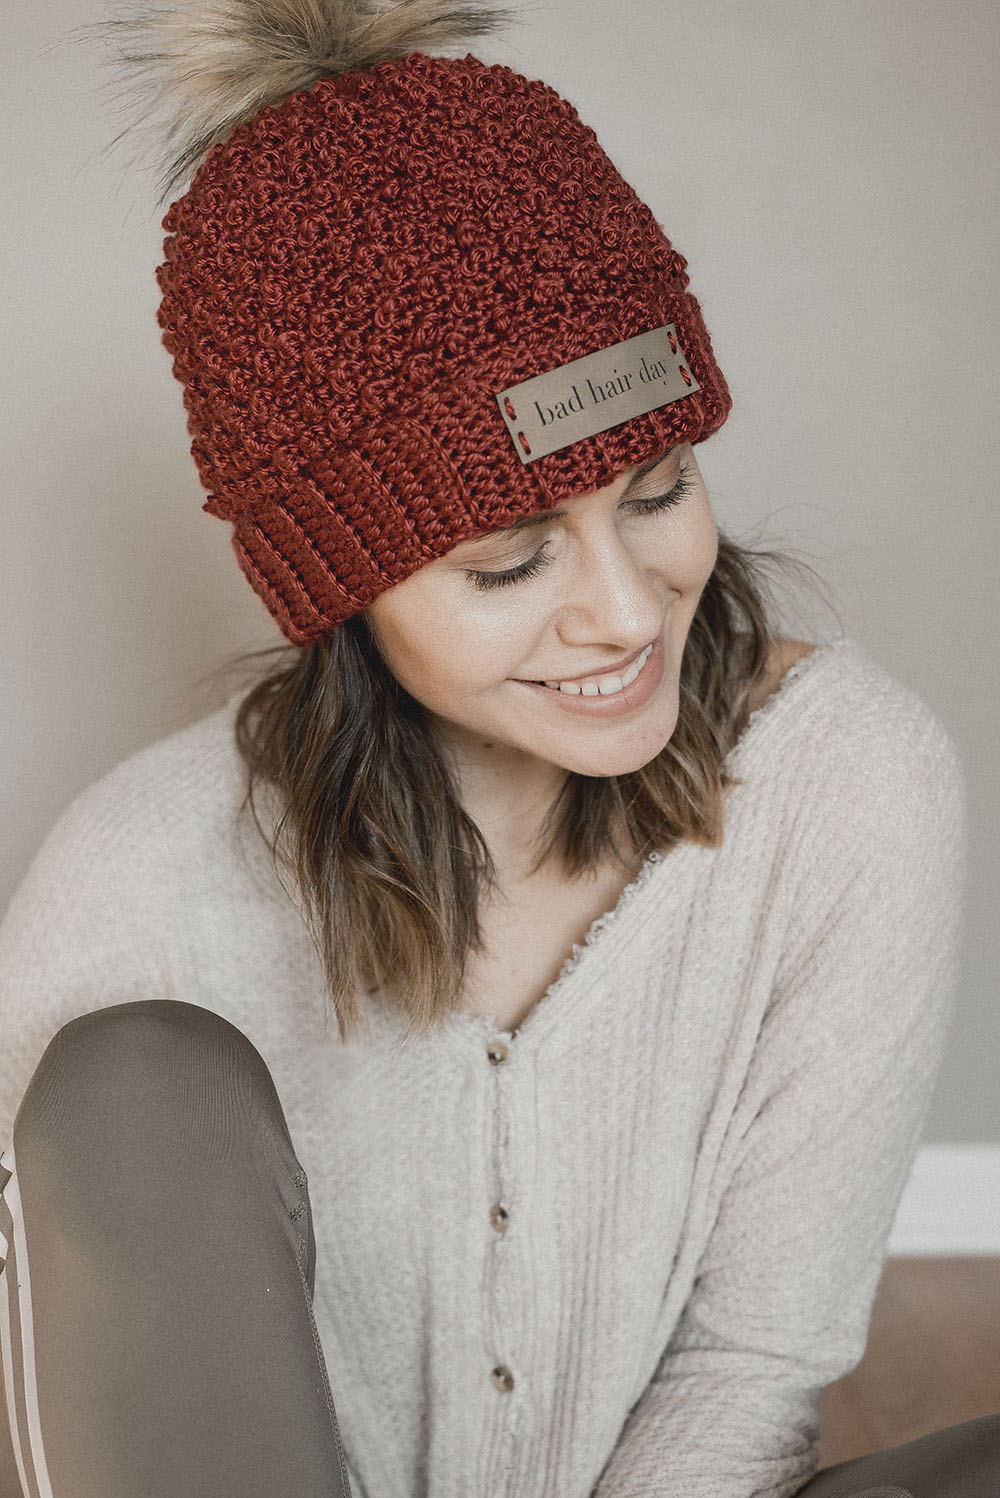 Free Crochet Pattern - Bad Hair Day Beanie - Megmade with Love